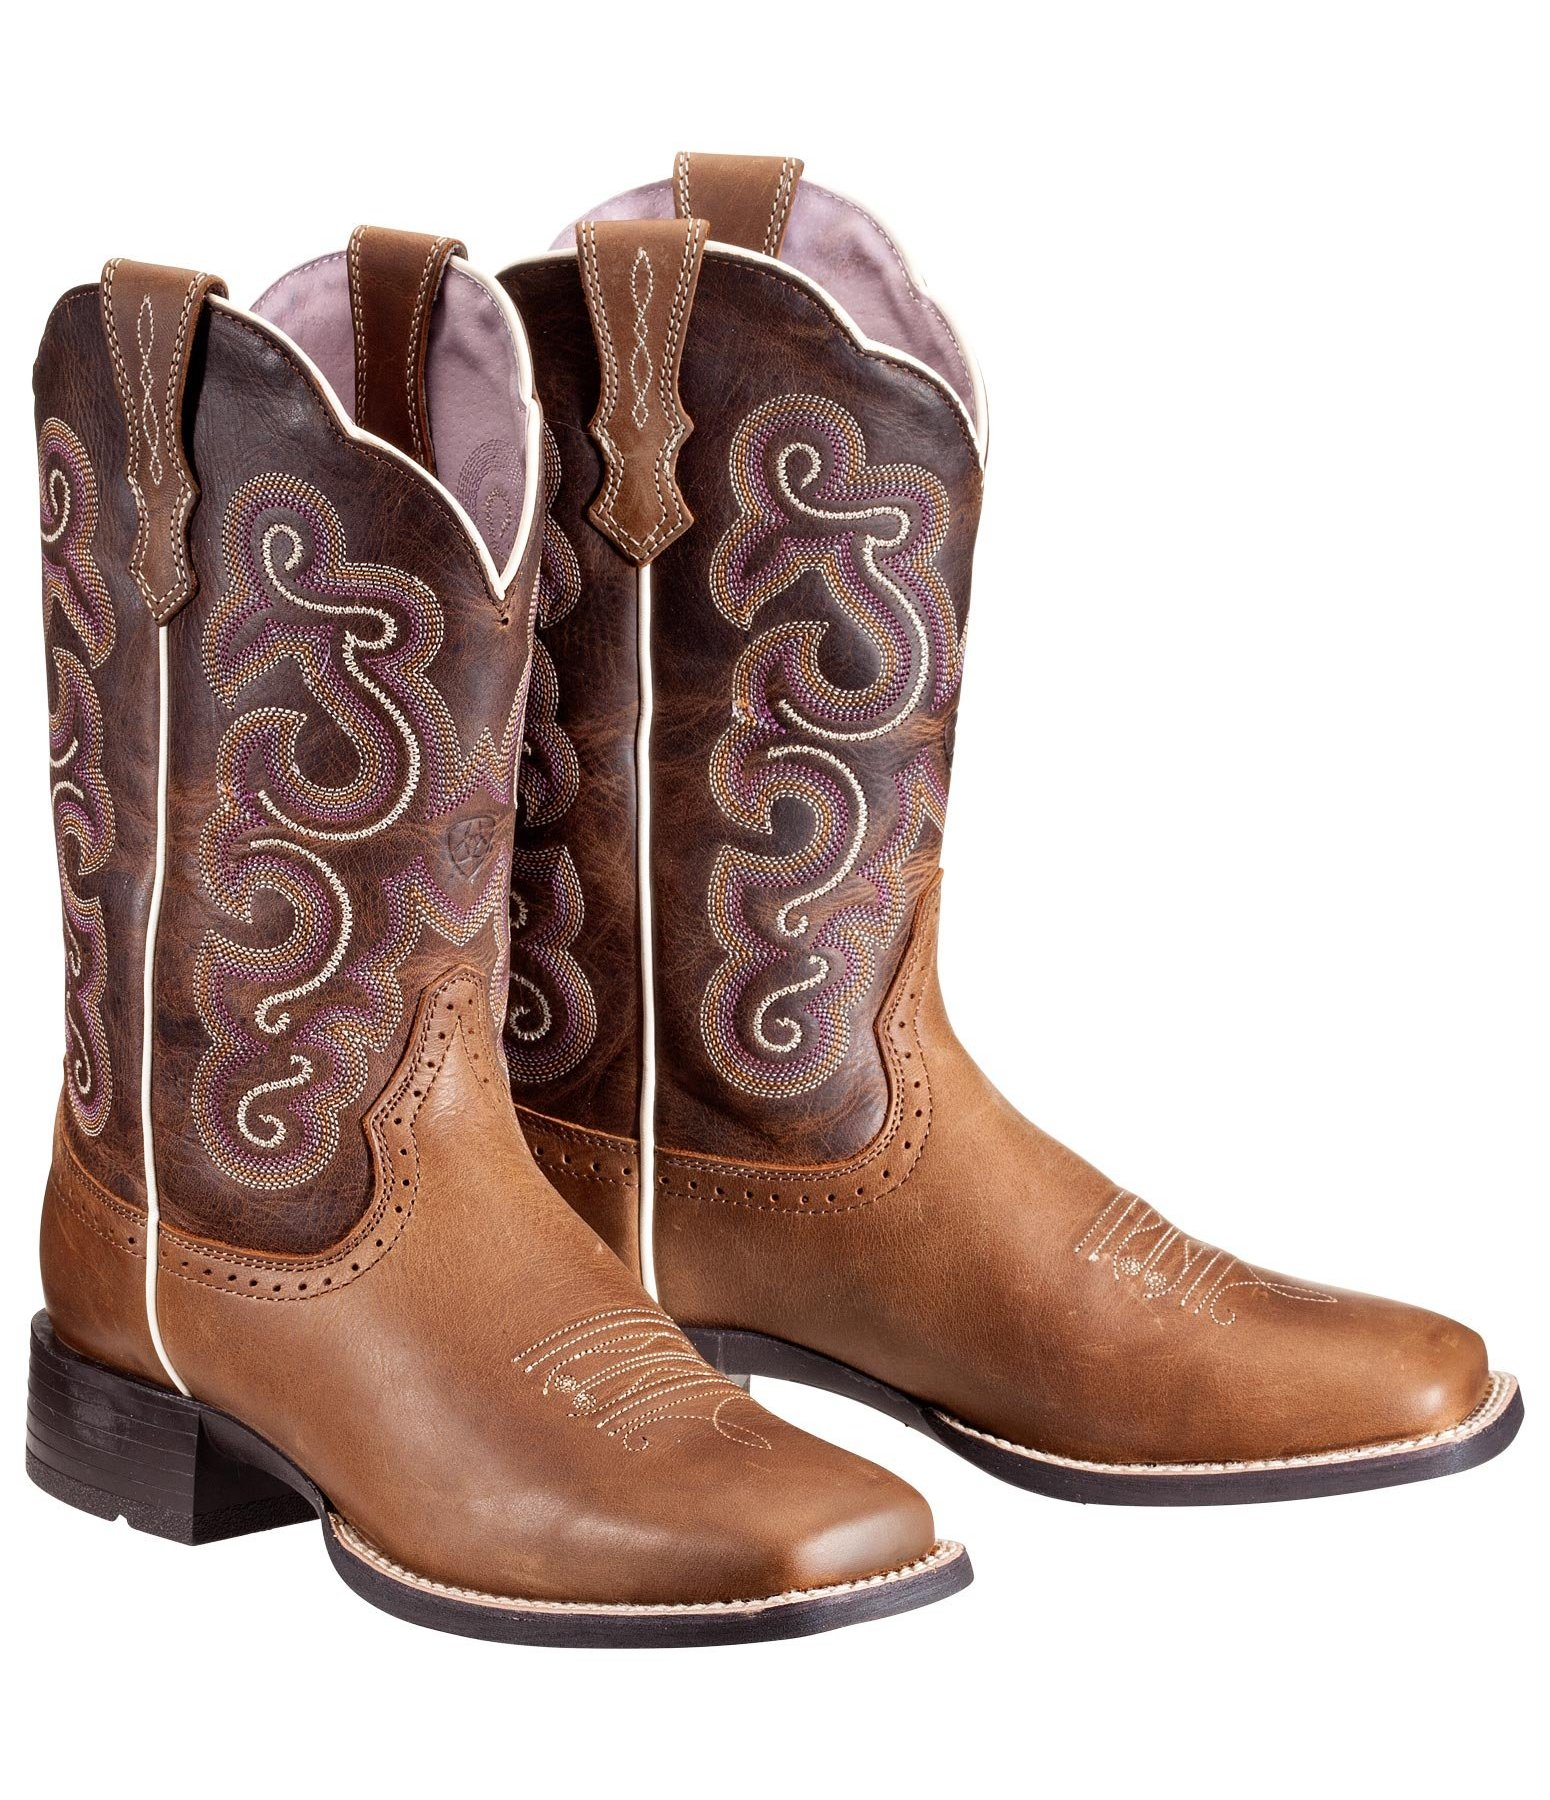 Bottes femmes Quickdraw Badlands Brown - Bottes western   Eperons ... fd66e26a04cf